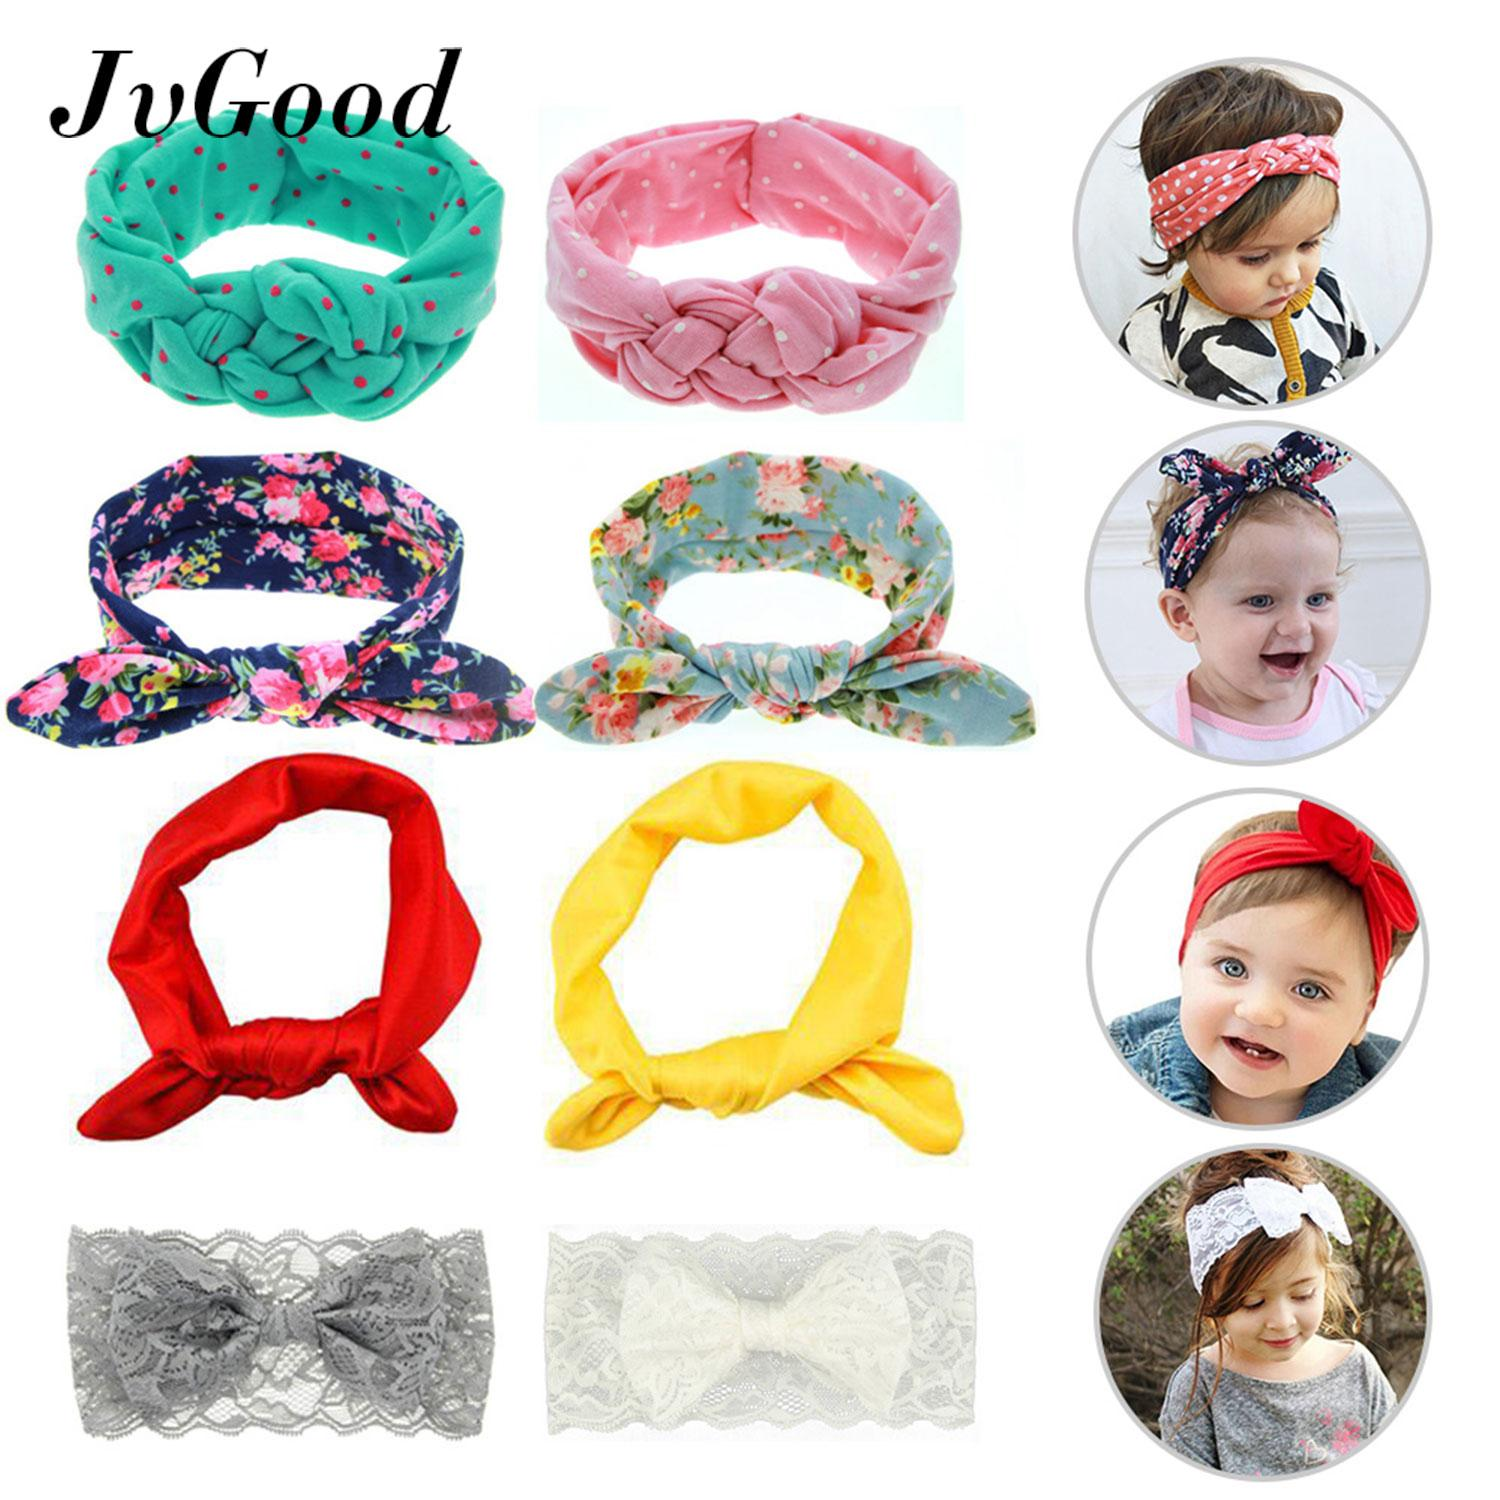 JvGood 8Pcs Baby Hairband Girl Elastic Knotted Hair Accessories Headbands for Newborn,Toddler and Childrens